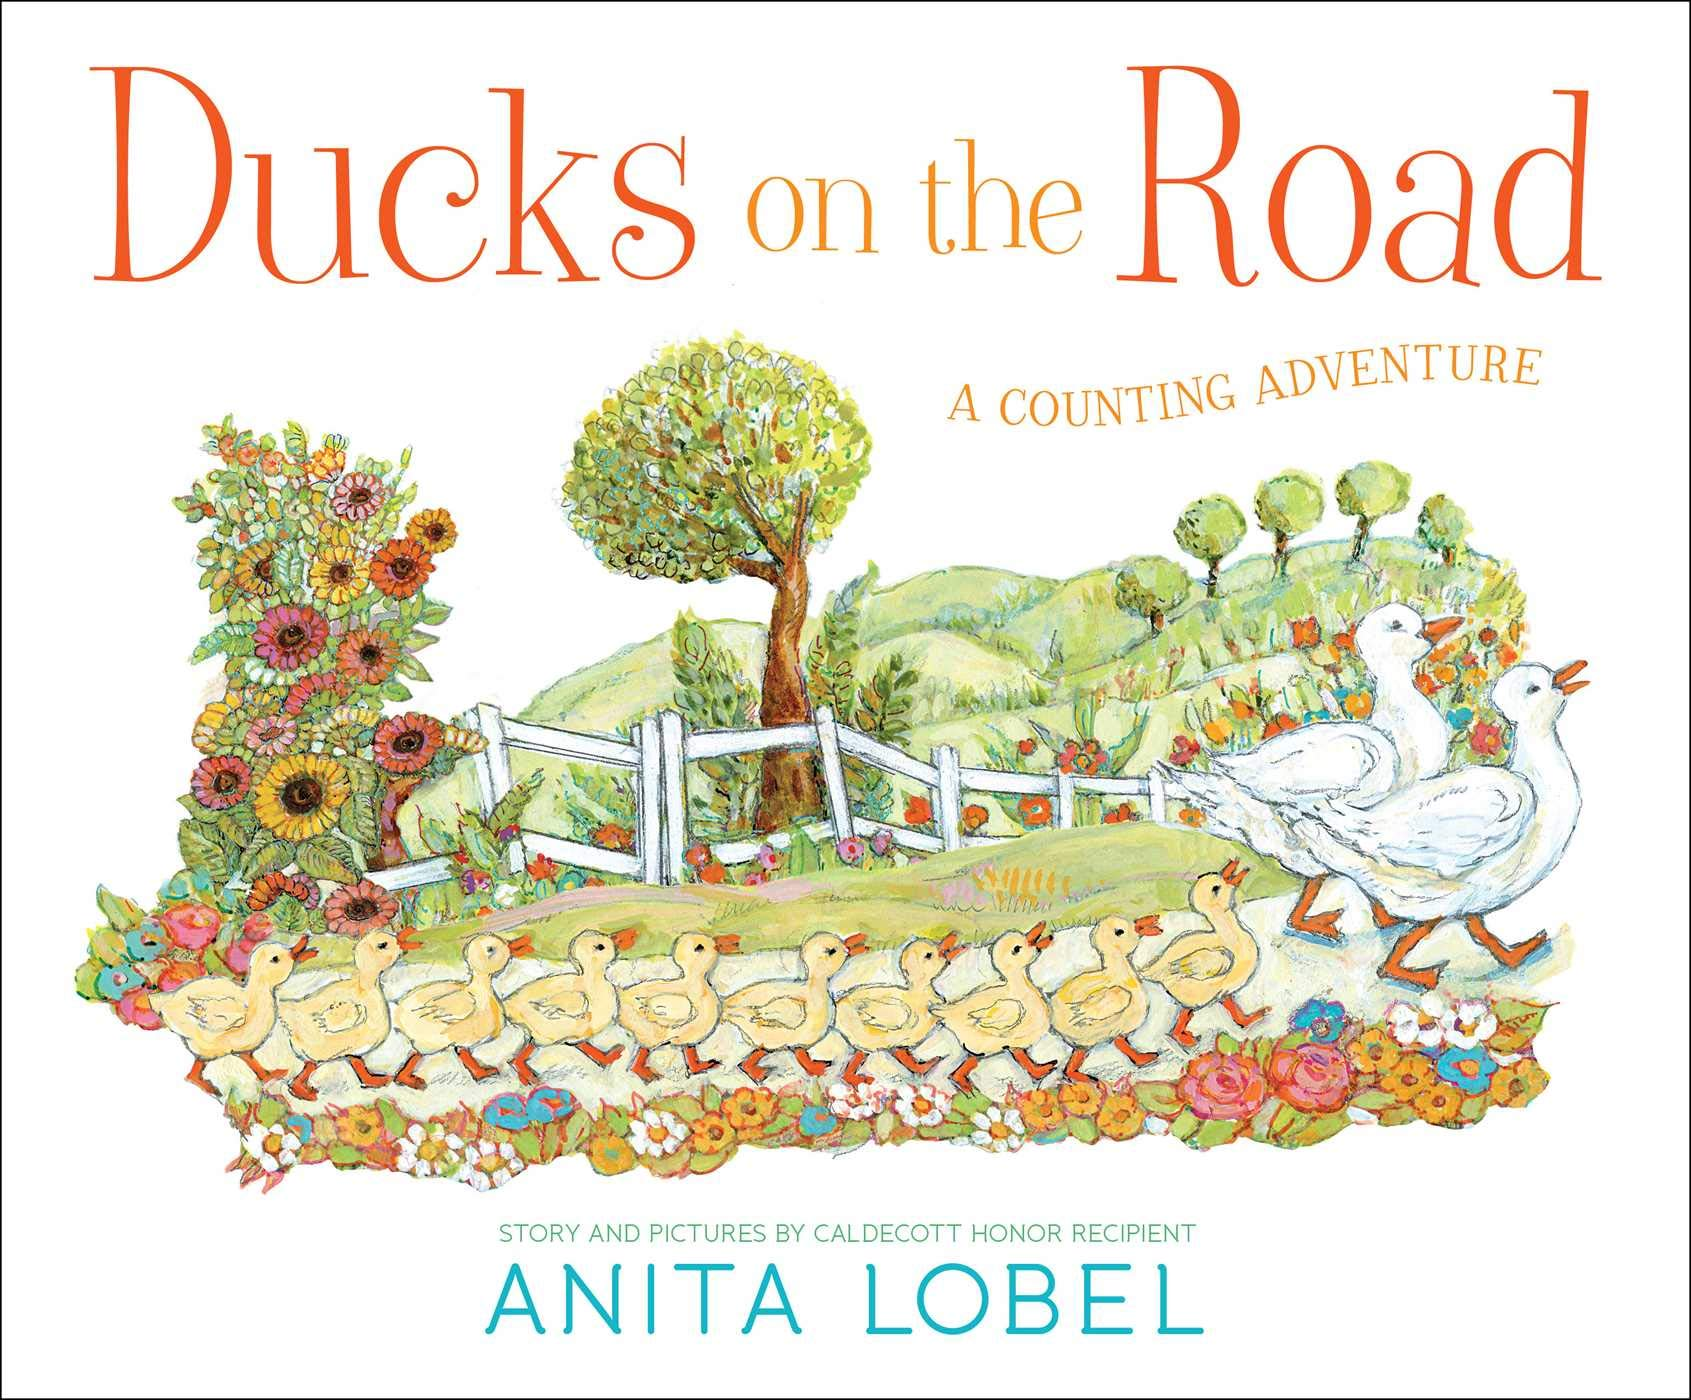 Ducks on the Road